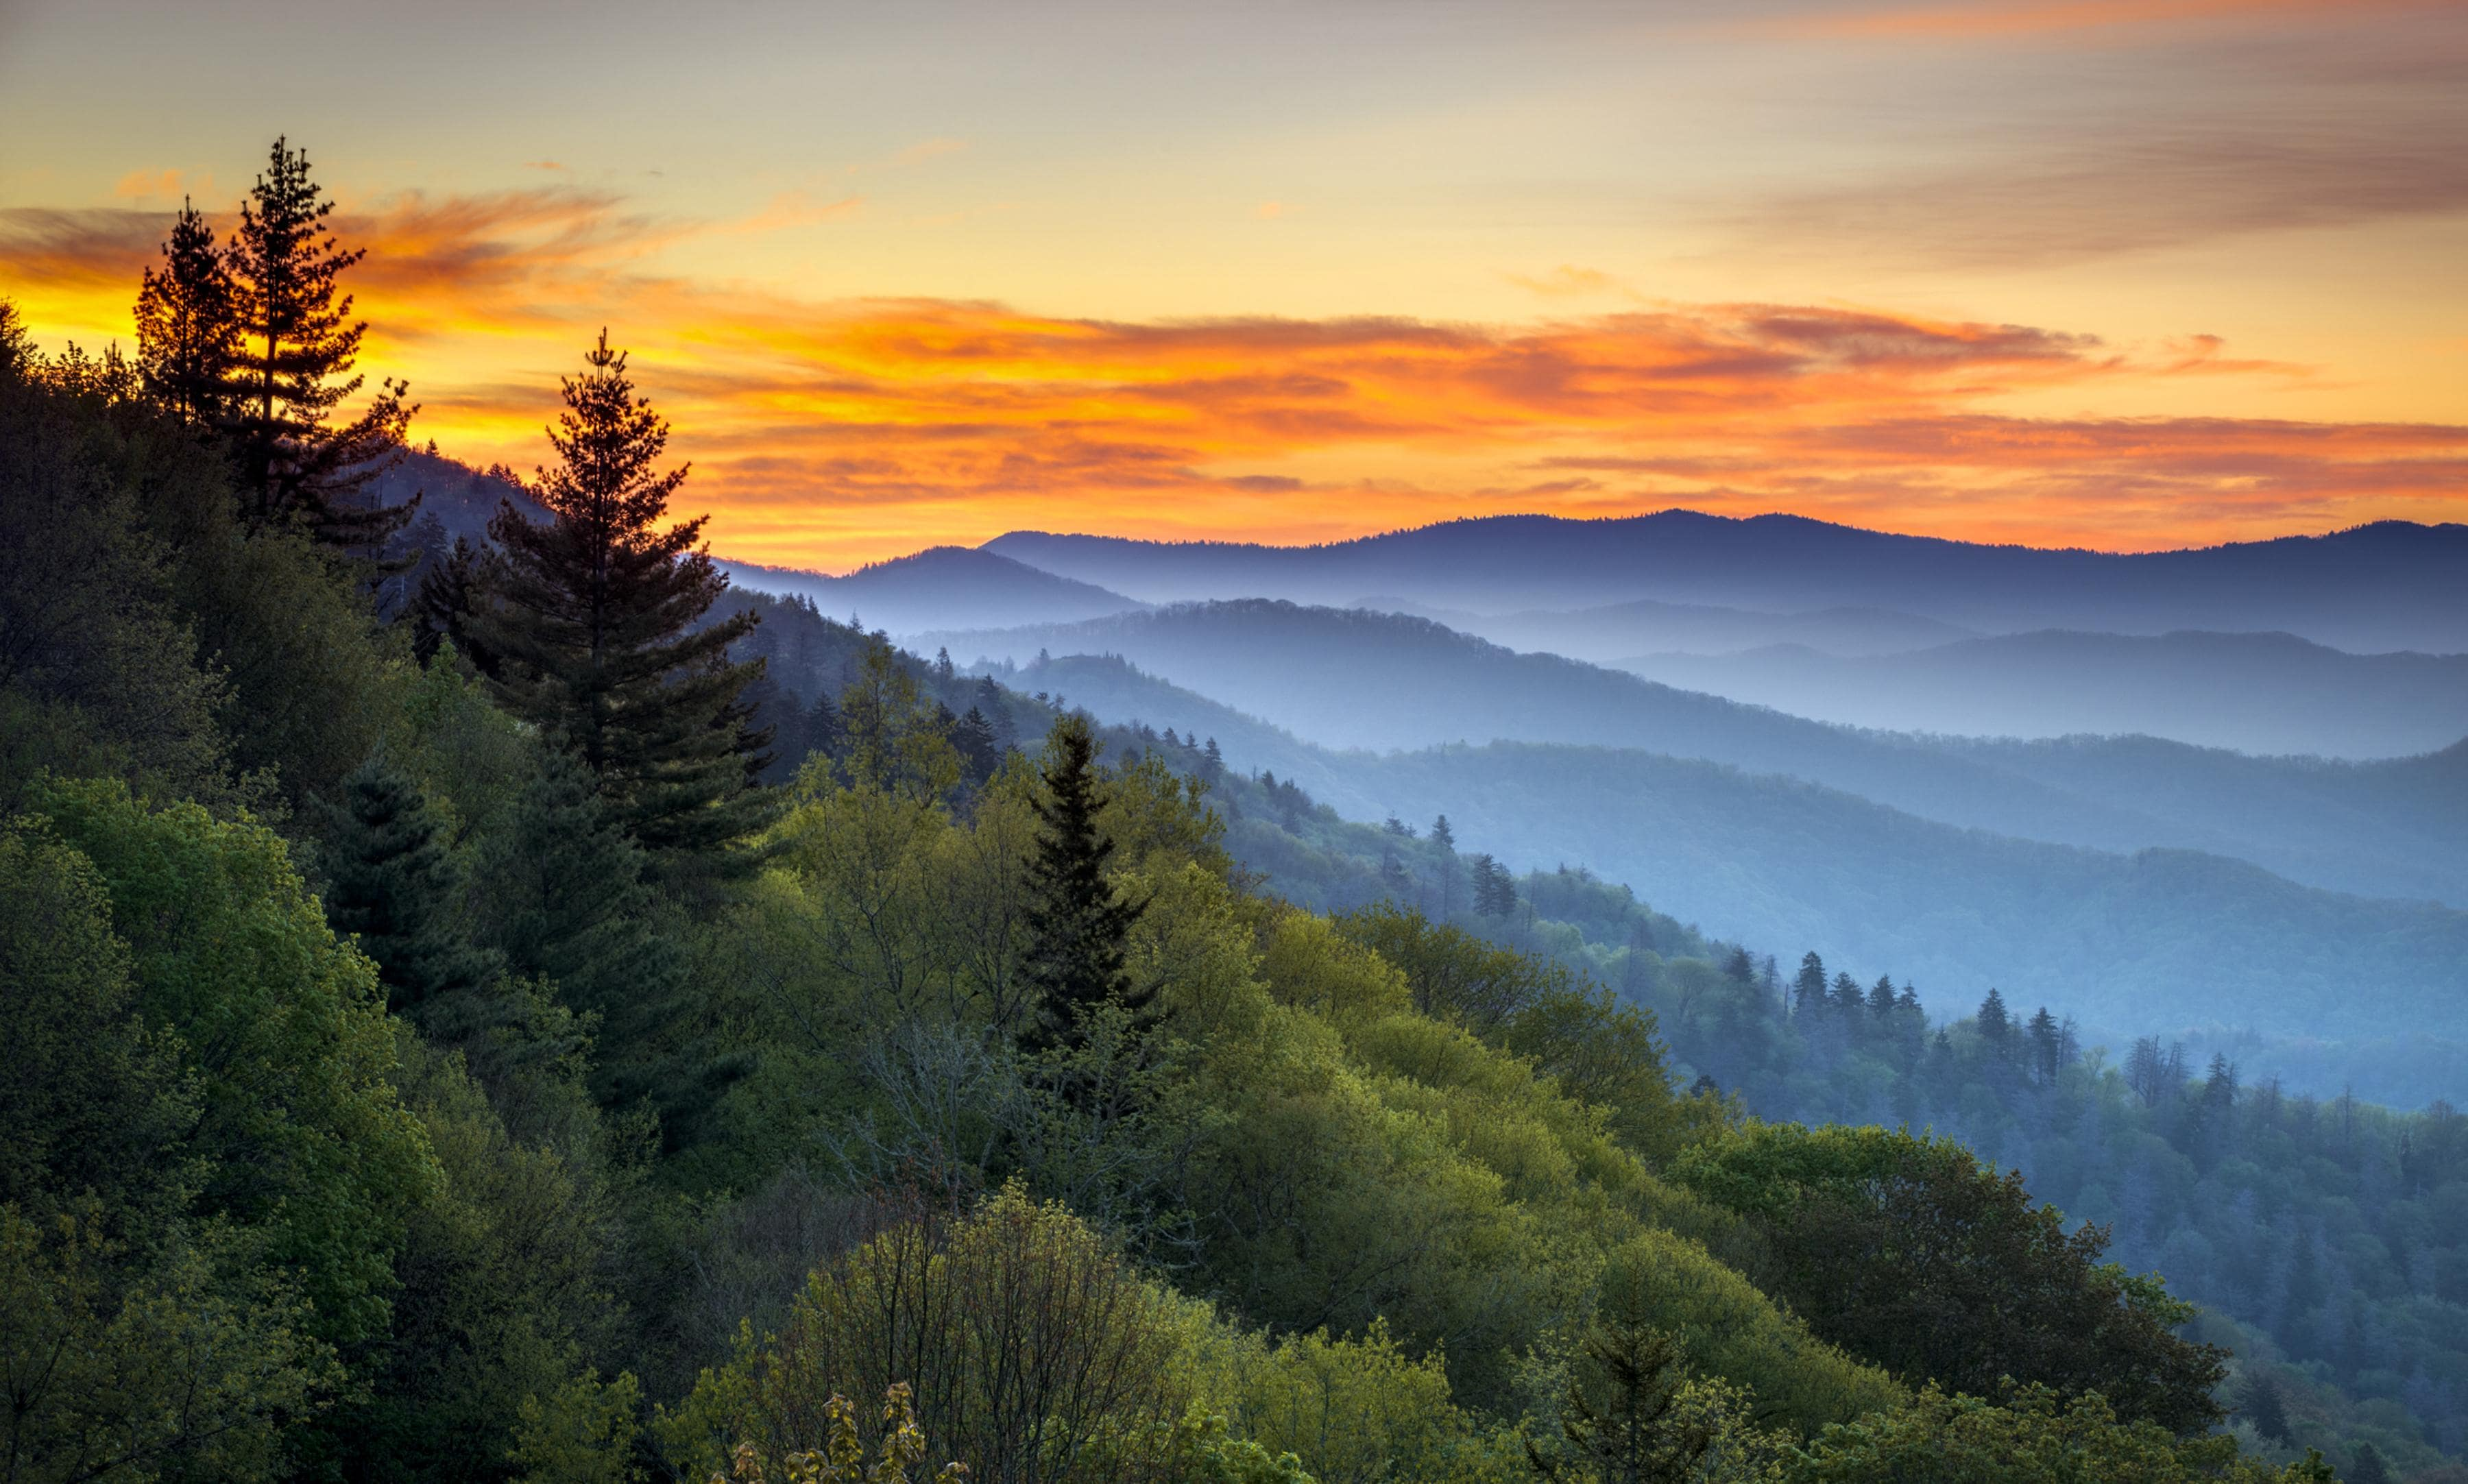 Ski at Oder or hike the Great Smoky Mountains -- the outdoors are right at your fingertips!